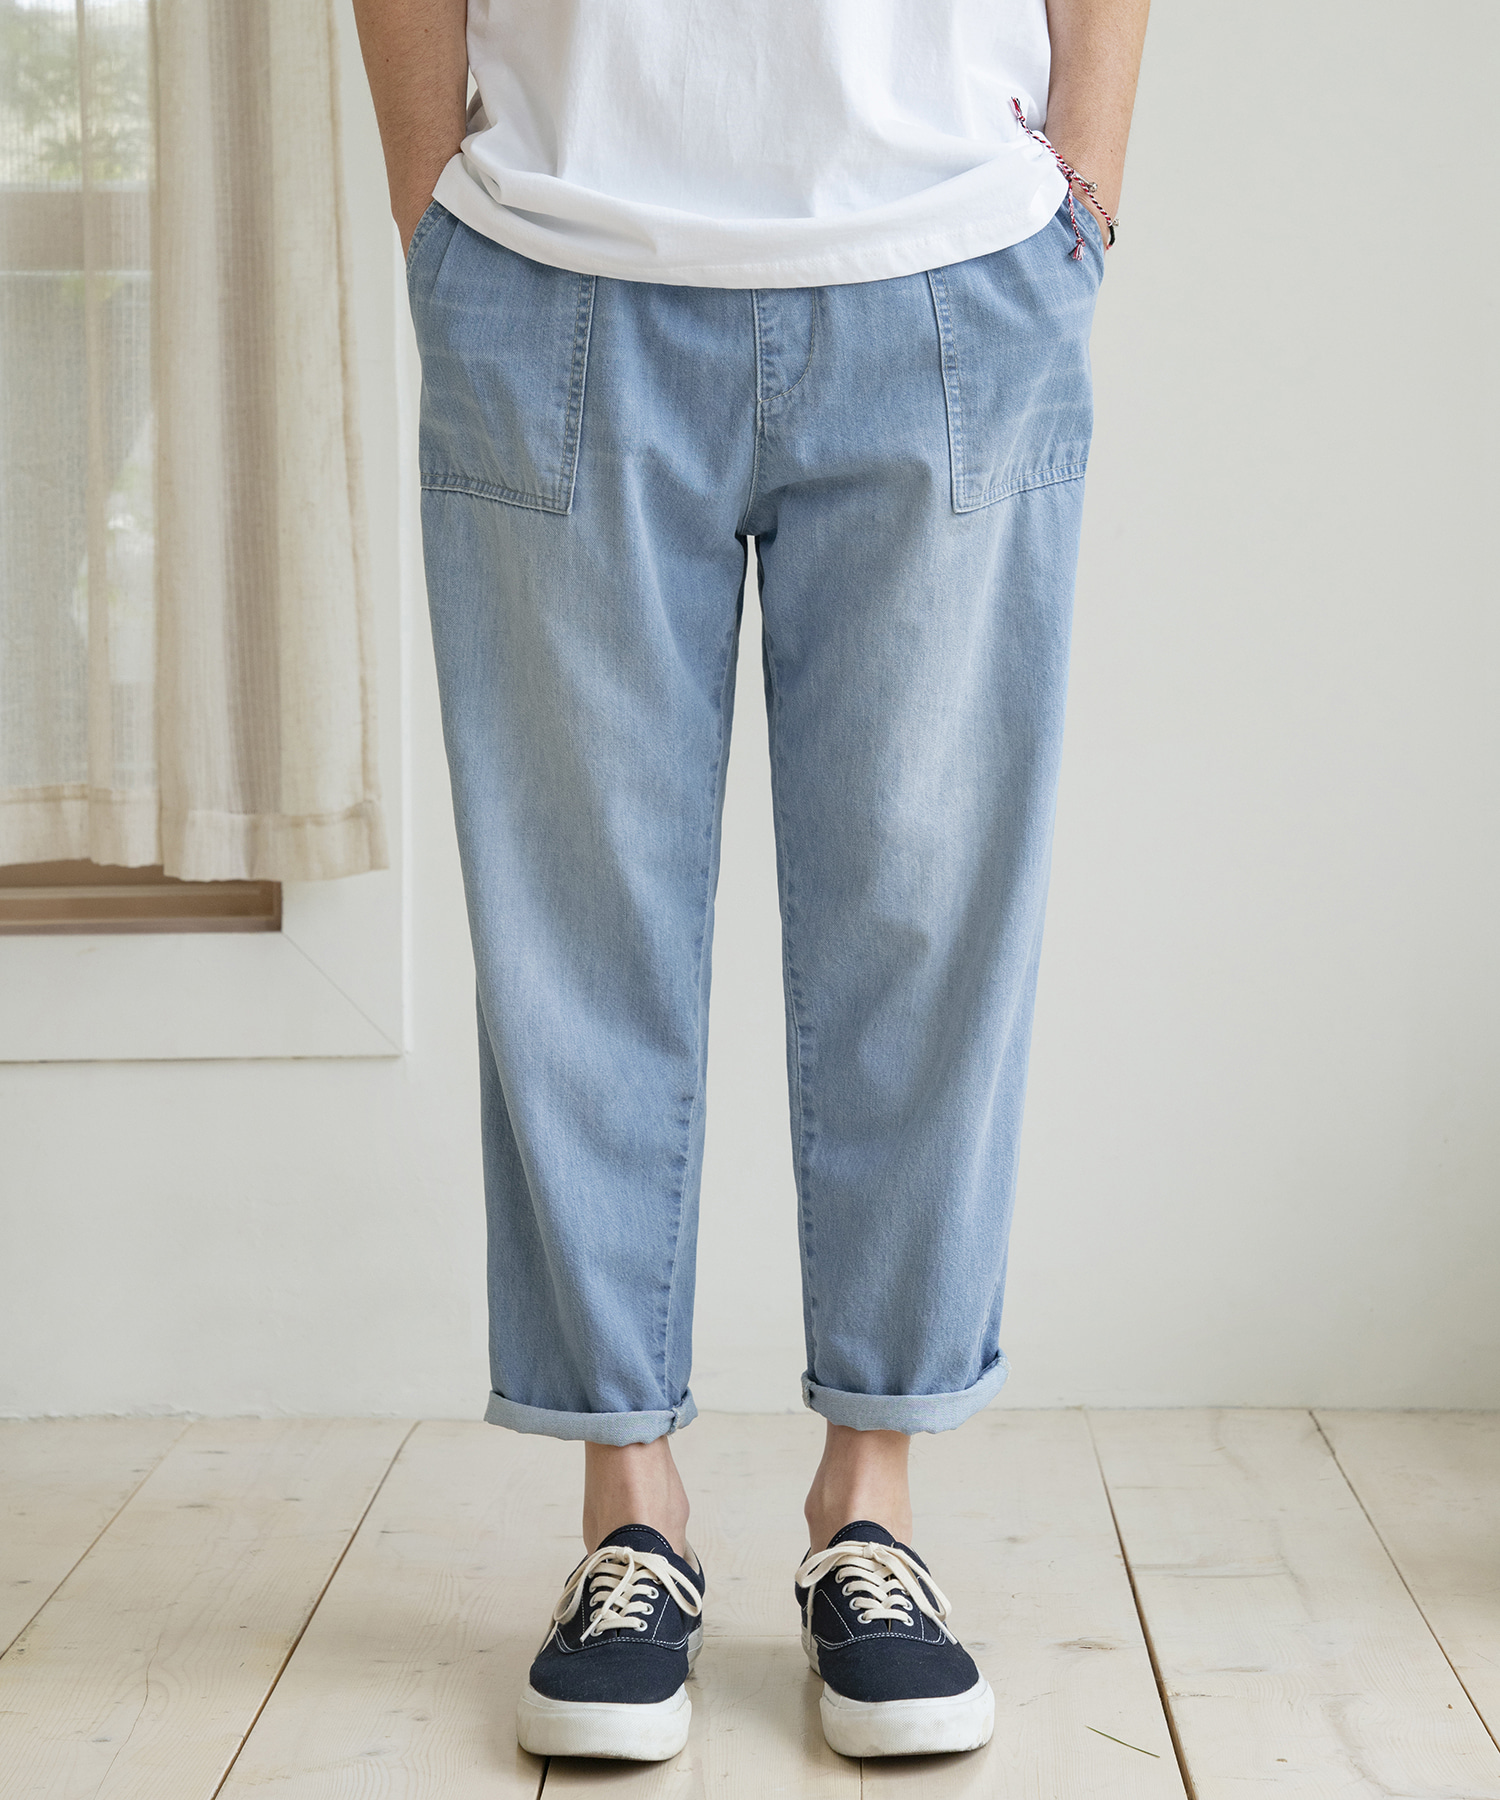 DP-969 B Project Denim Pants